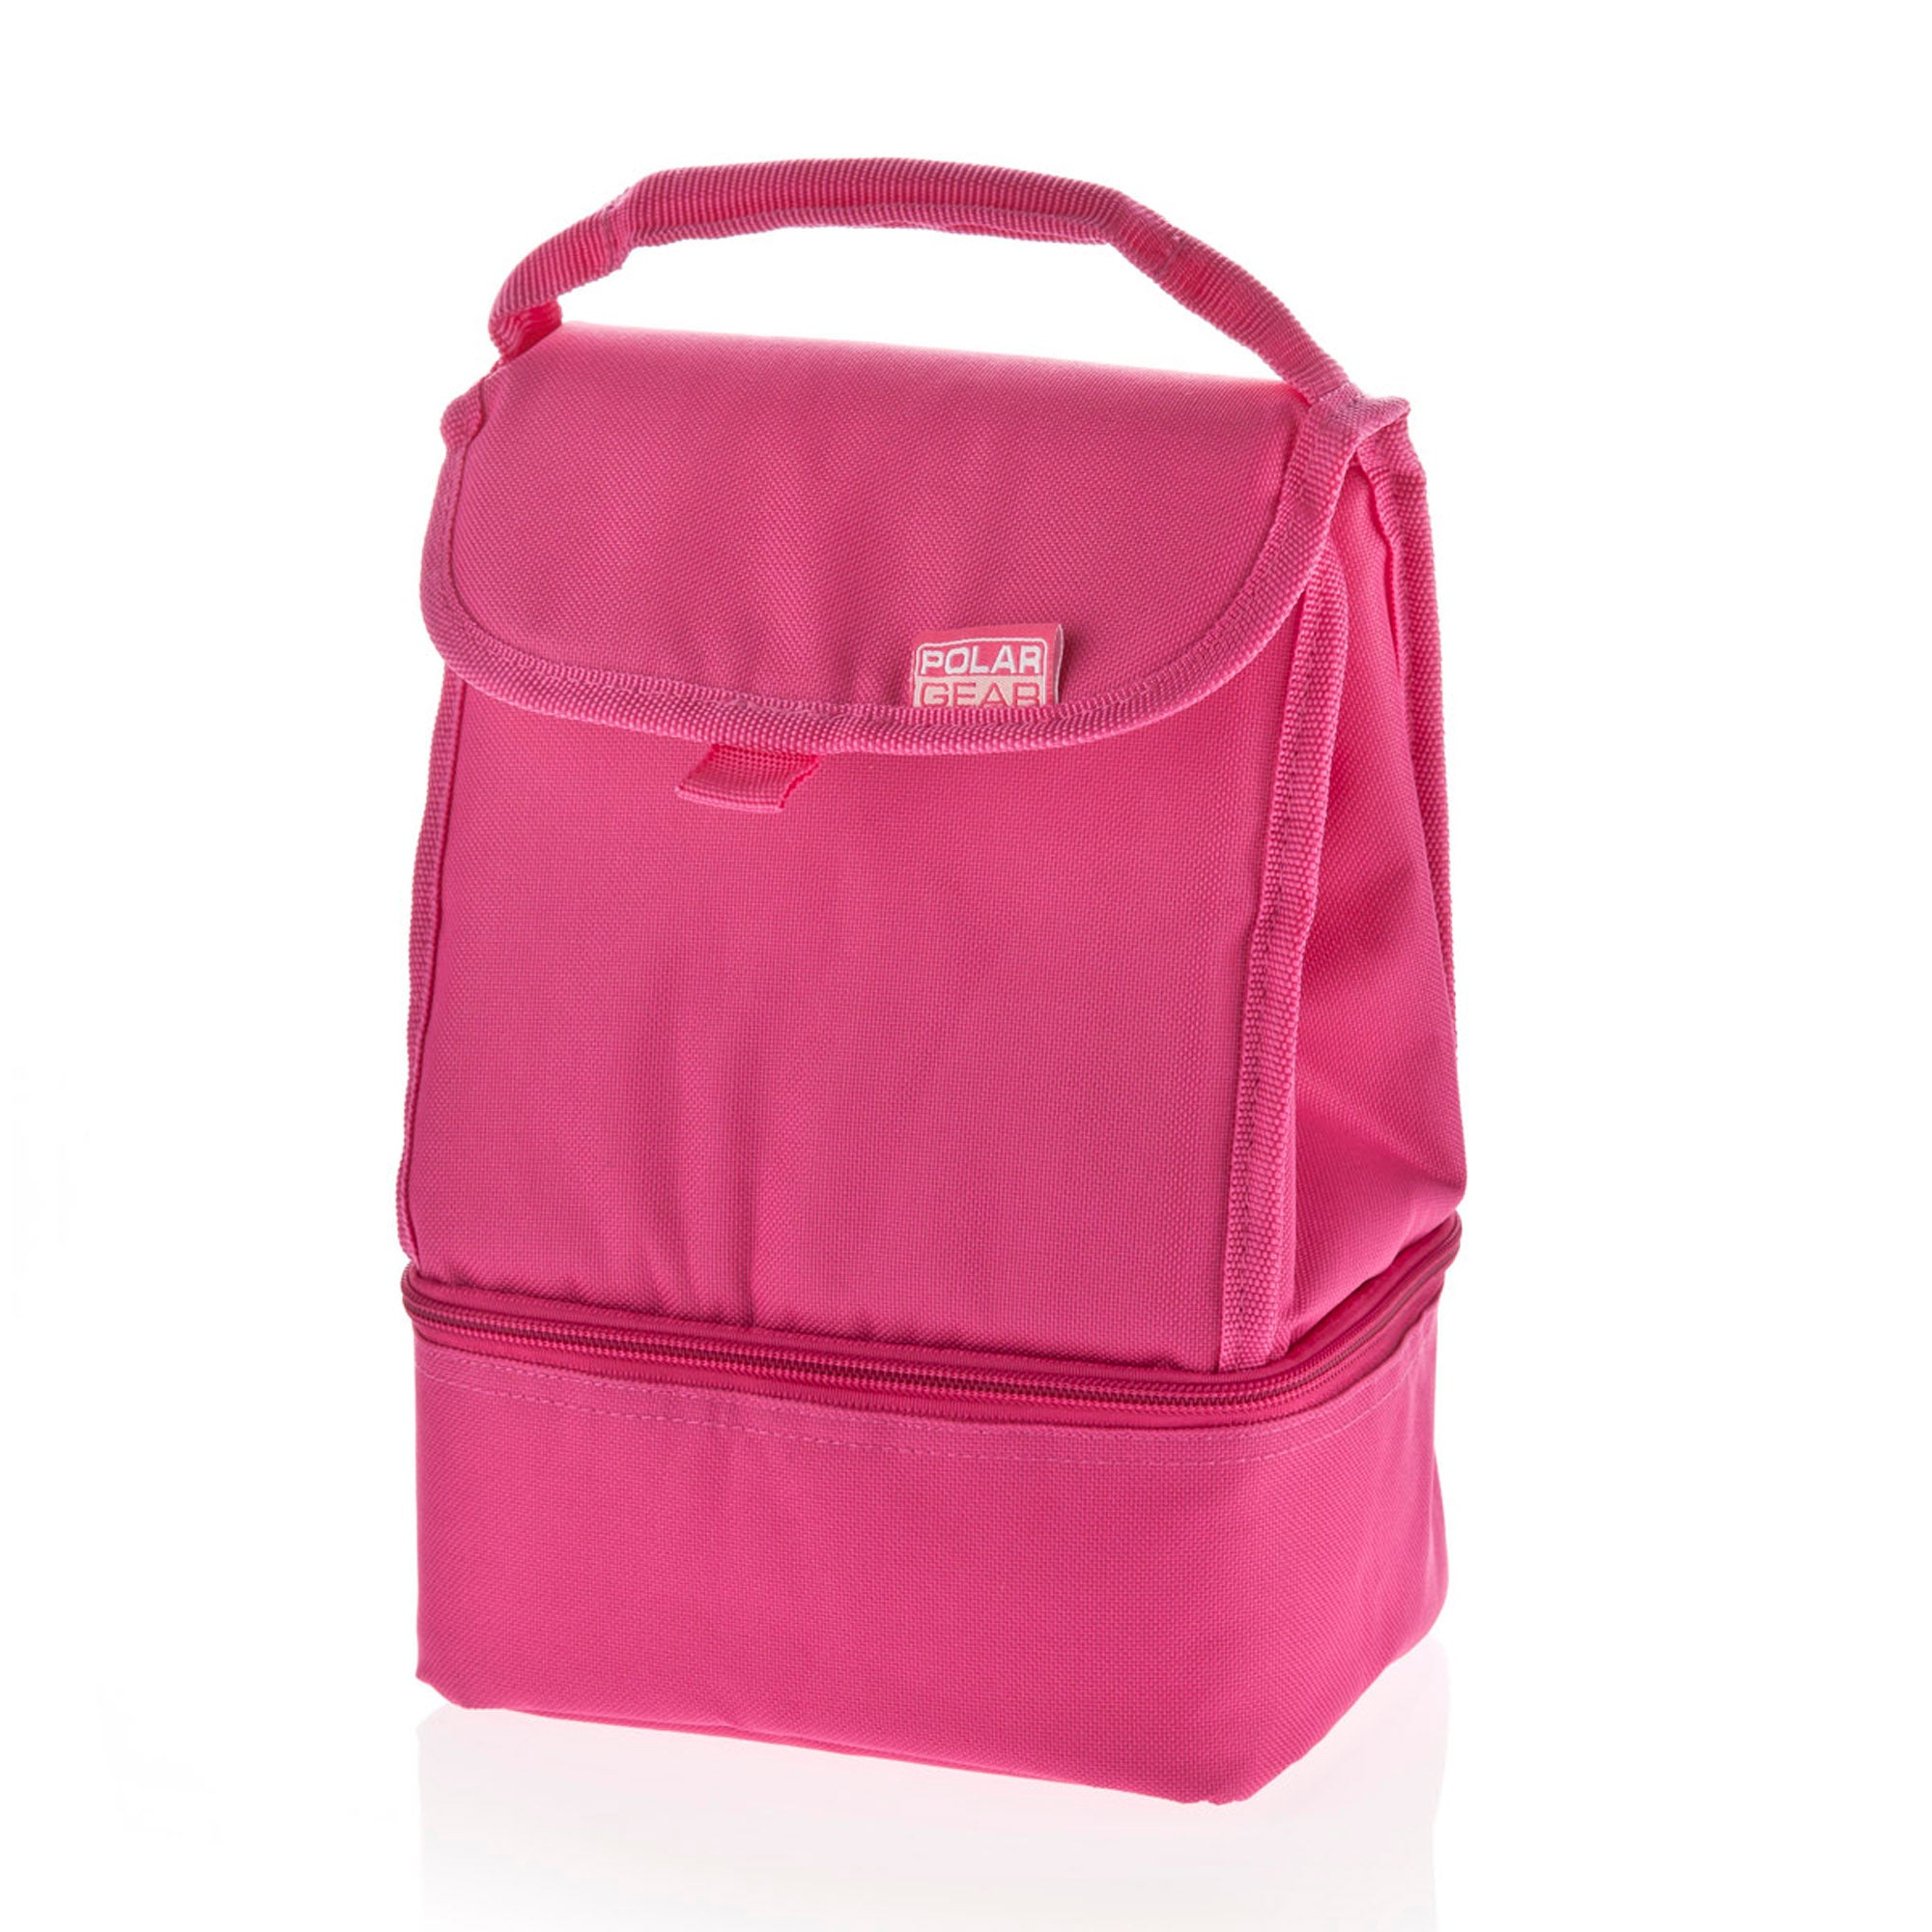 Polar Gear Two Compartment Pink Cooler Bag